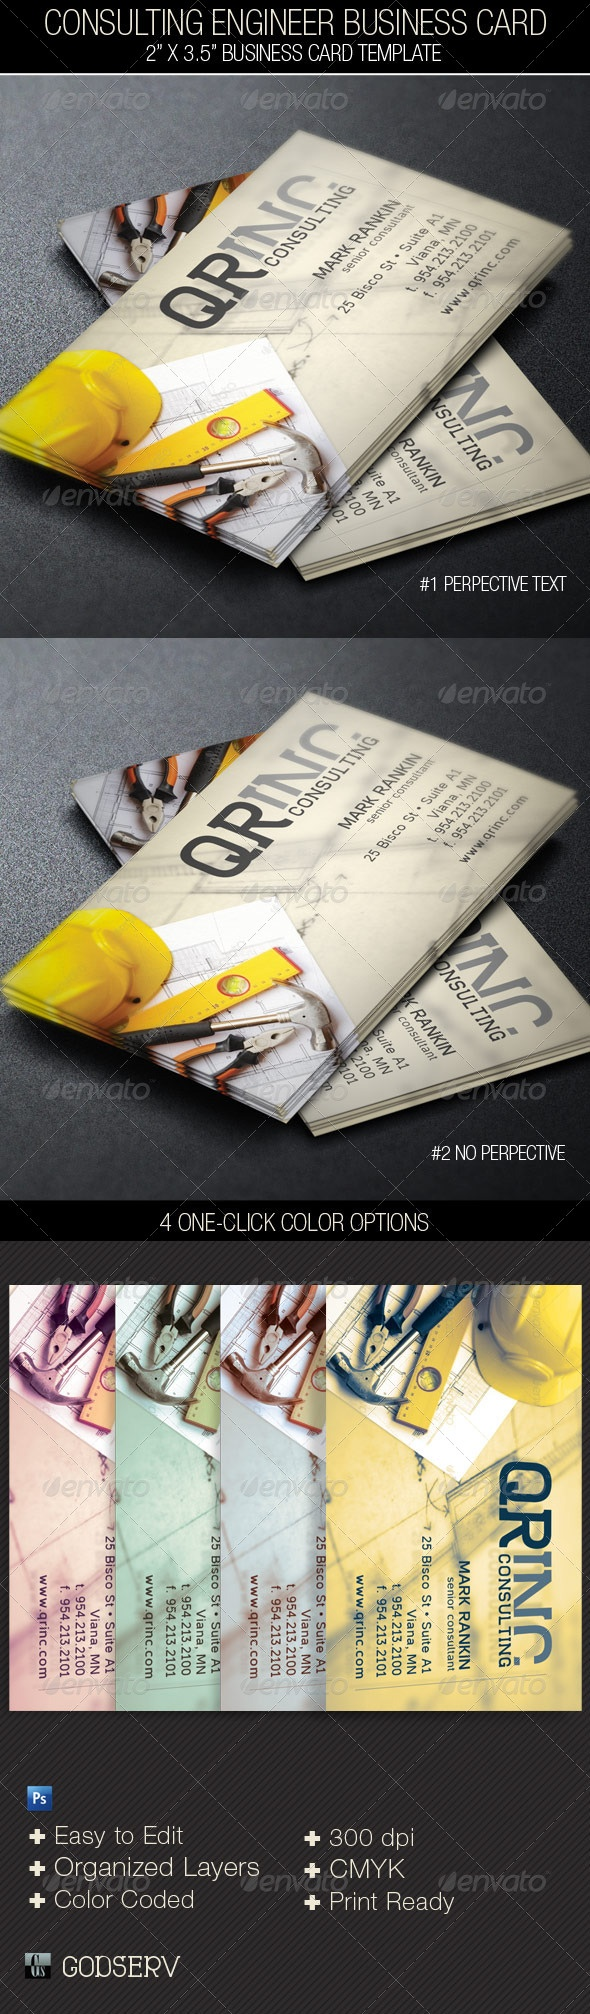 Electrical Engineers Consulting Business Cards : Images about business cards on pinterest black